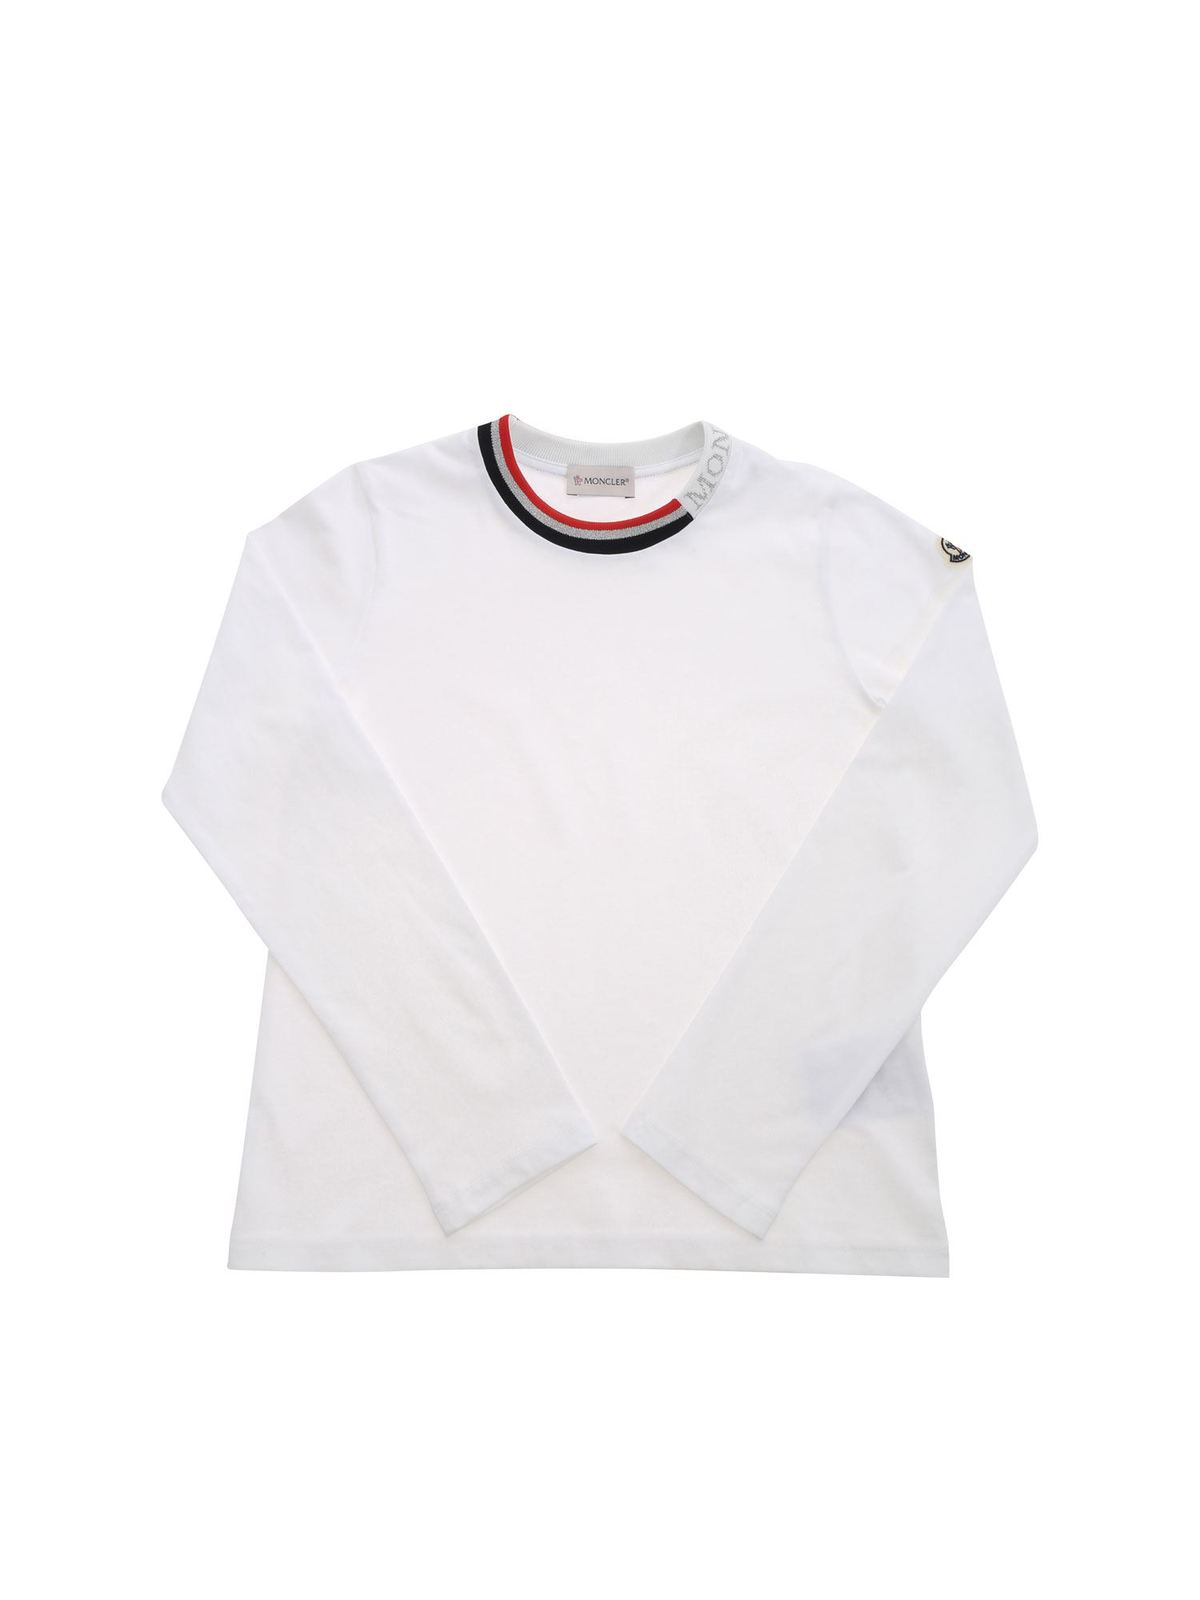 MONCLER JR LAME LOGO T-SHIRT IN WHITE